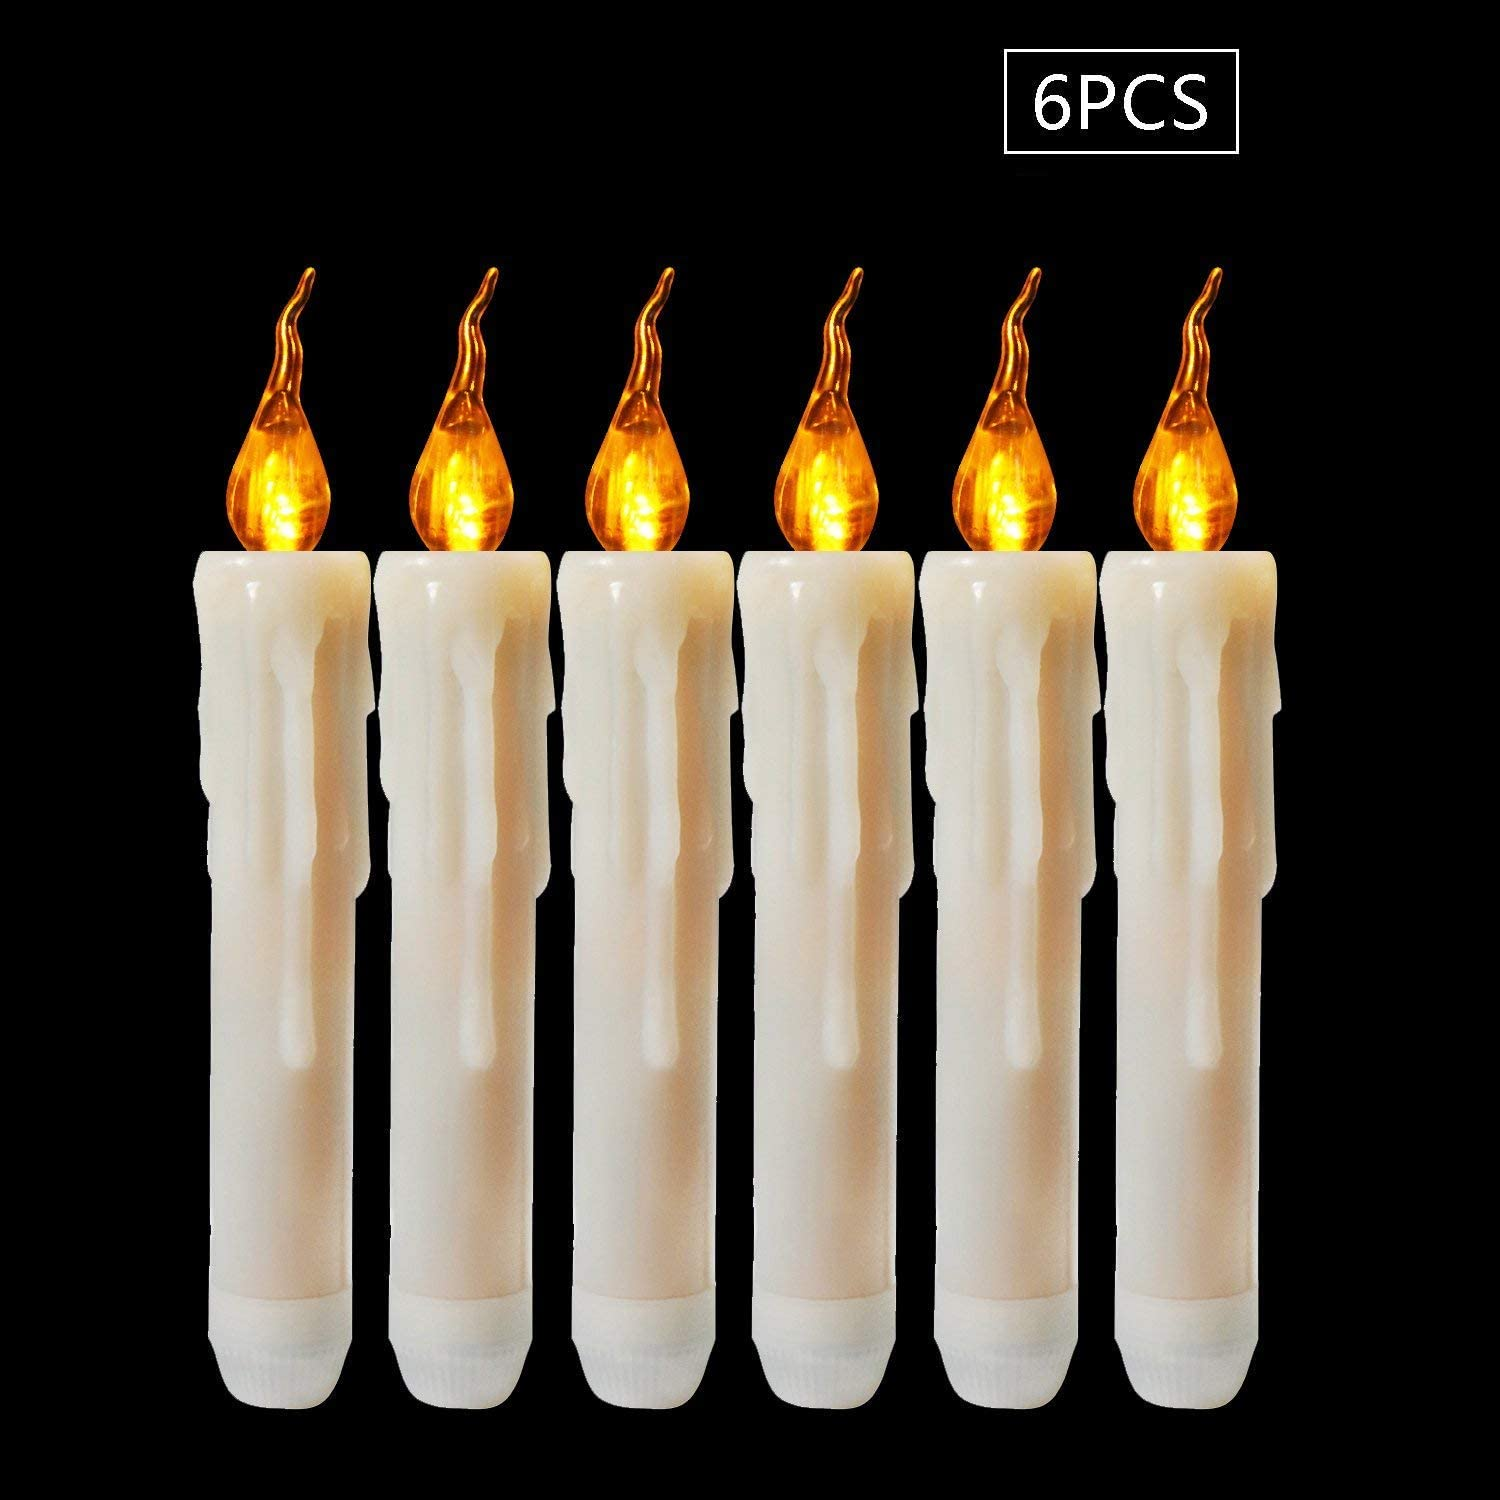 Lighting 120+Hrs Perfect Stick Candle for Halloween,X-mas,Home Decor.Size:1/'/'D6.7/'/'H NOT Included Micandle 6PCS Wax Dripped Amber Flickering Flameless Fake LED Taper Candle,Powered by 2AA Batteries